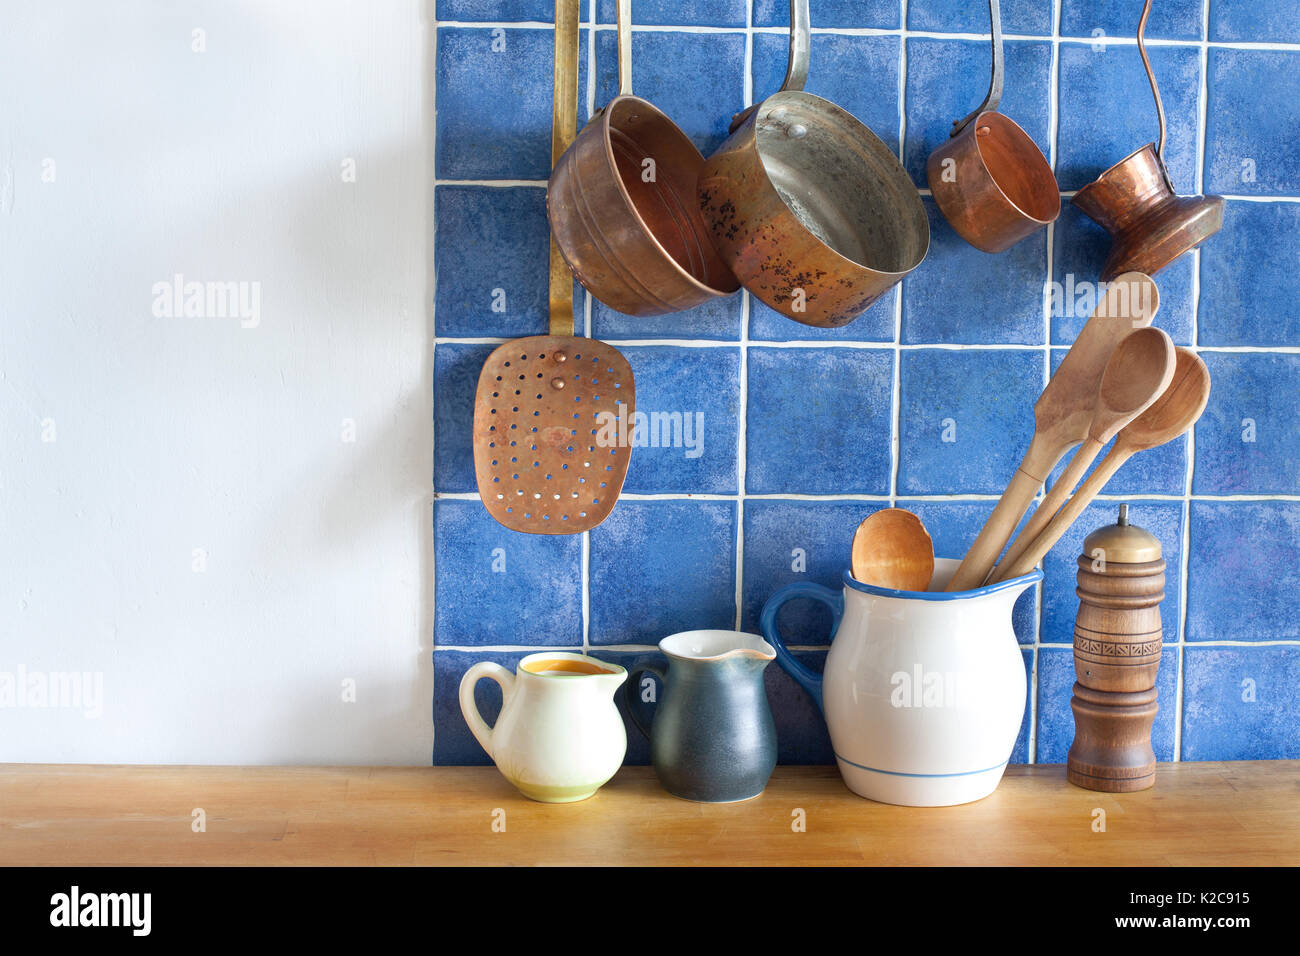 Retro design kitchen interior with accessories. Hanging copper kitchenware set. - Stock Image